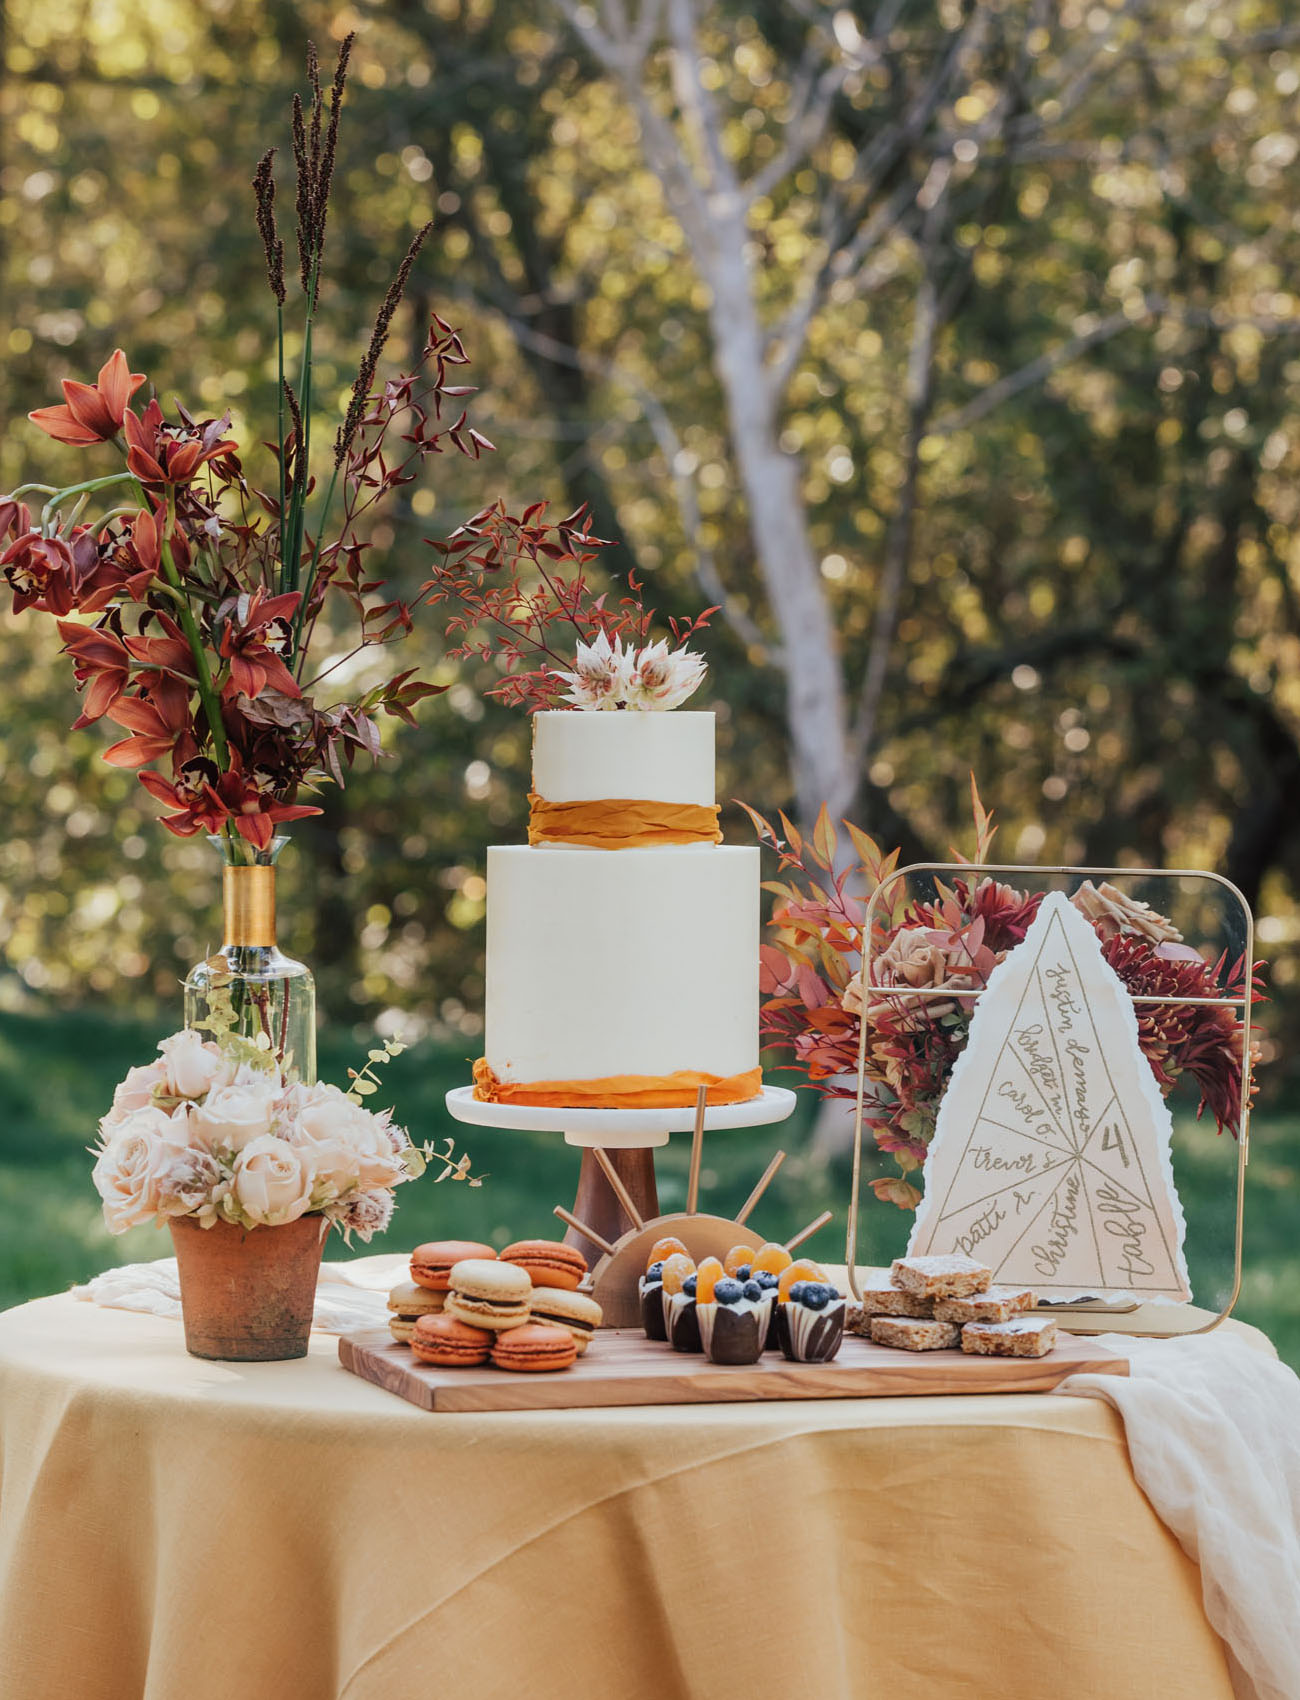 The dessert table was done with sweets, a wedding cake with rust colored ribbons and bold blooms